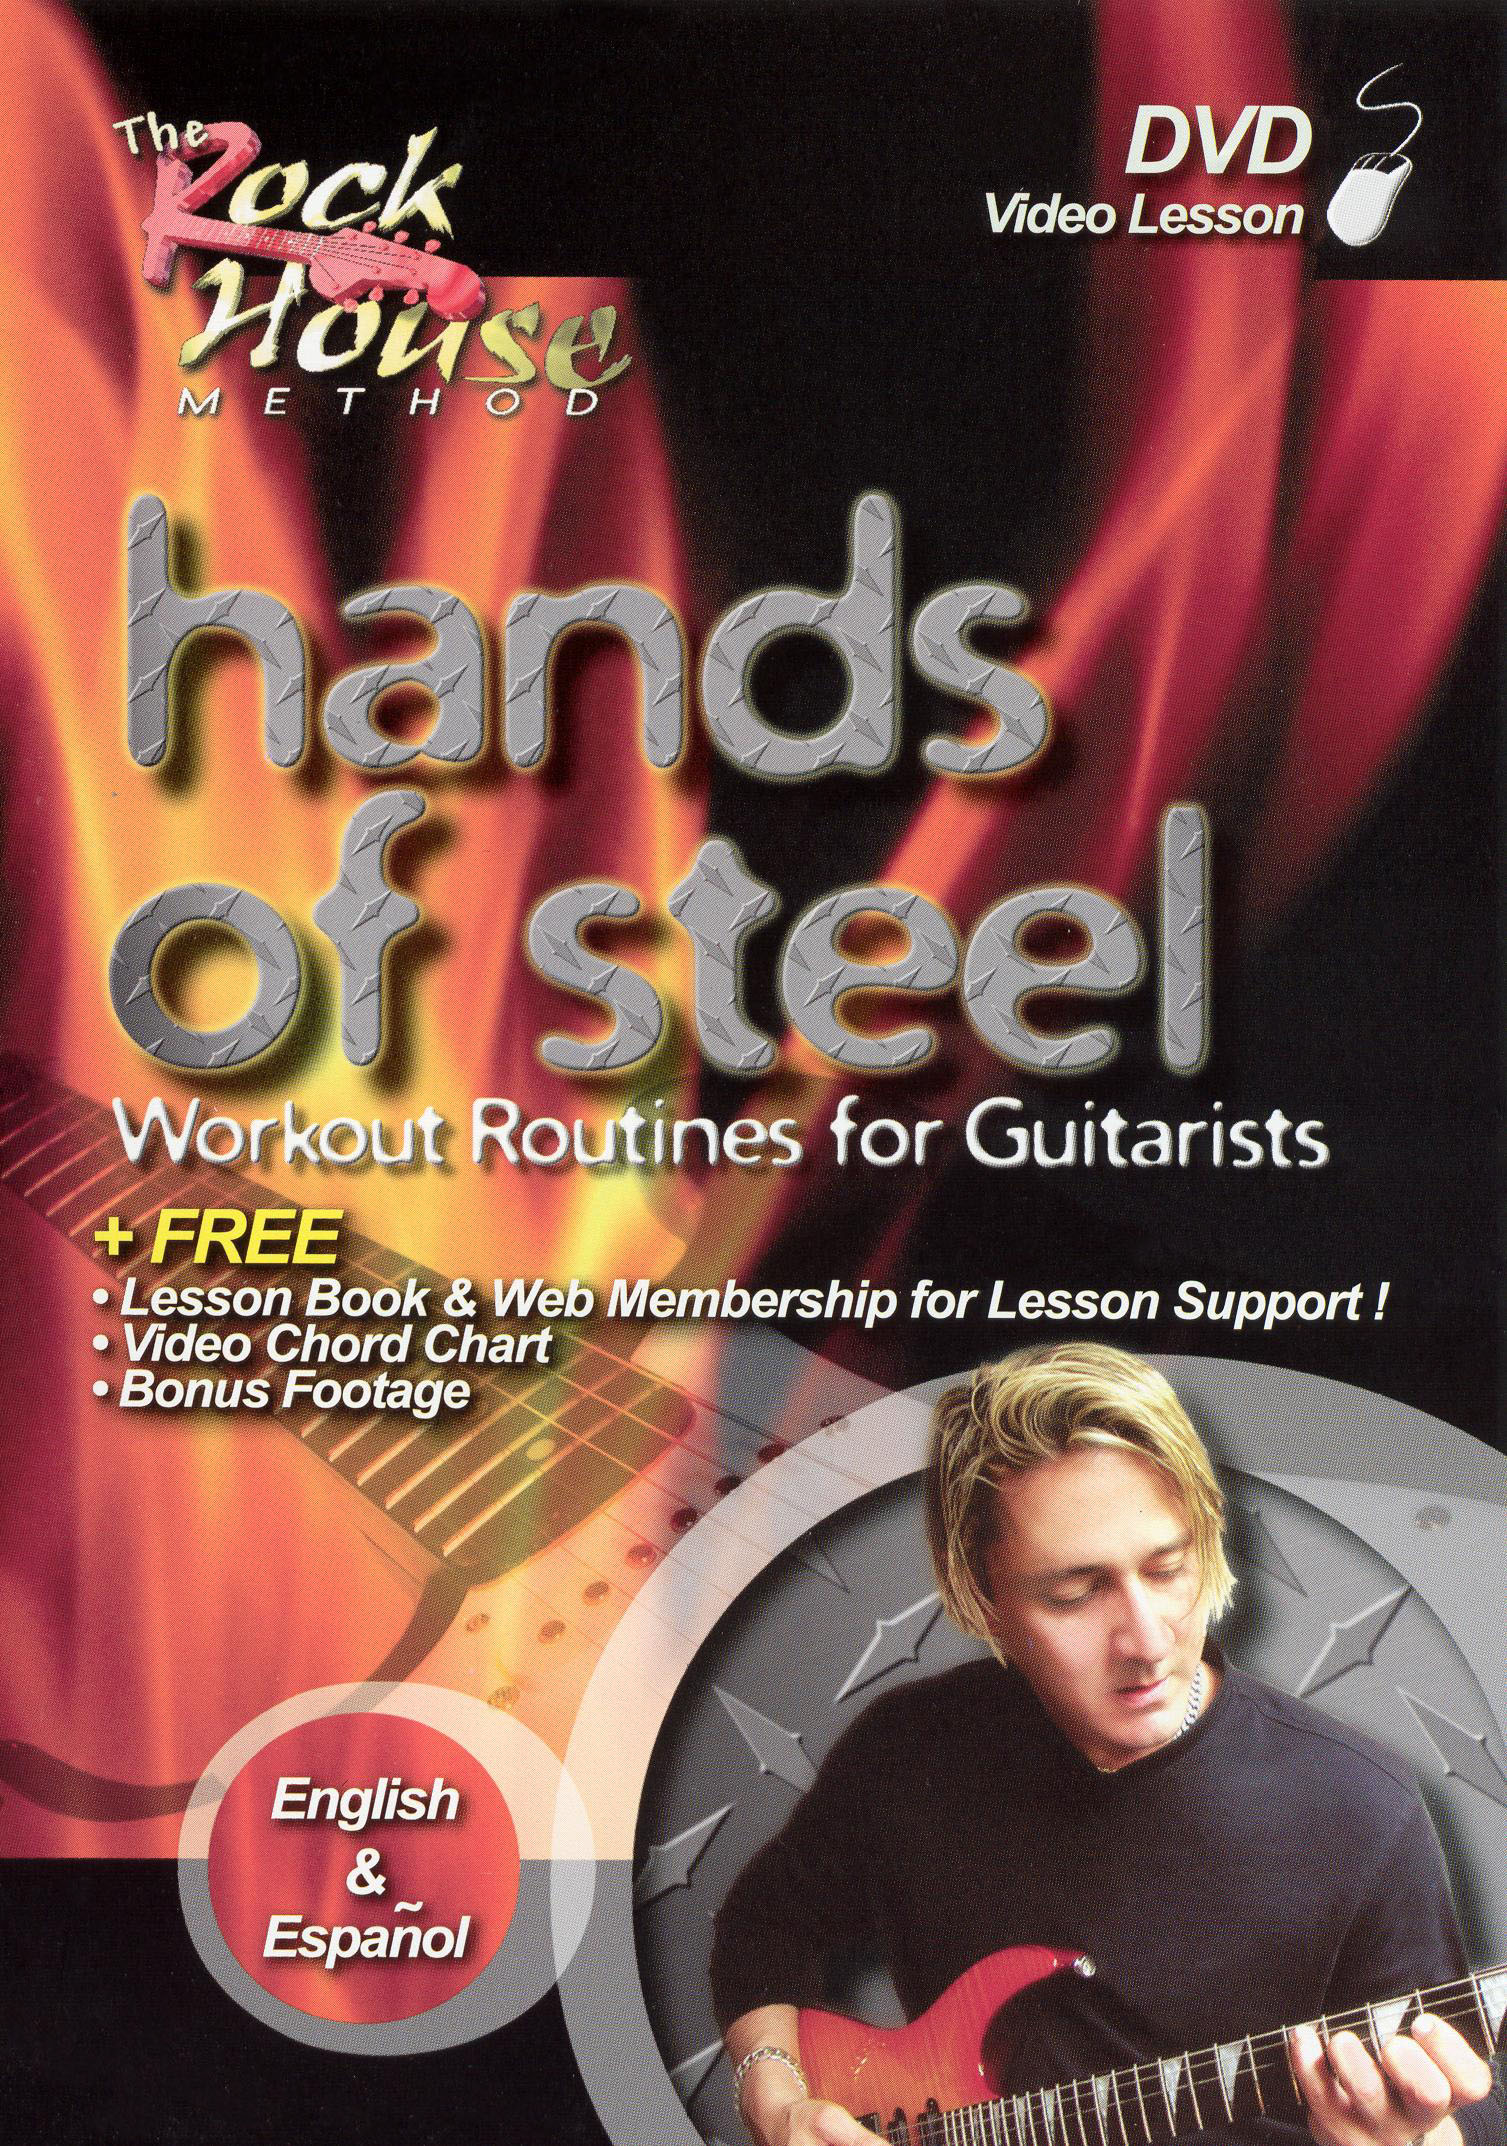 The Rock House Method: Hands of Steel